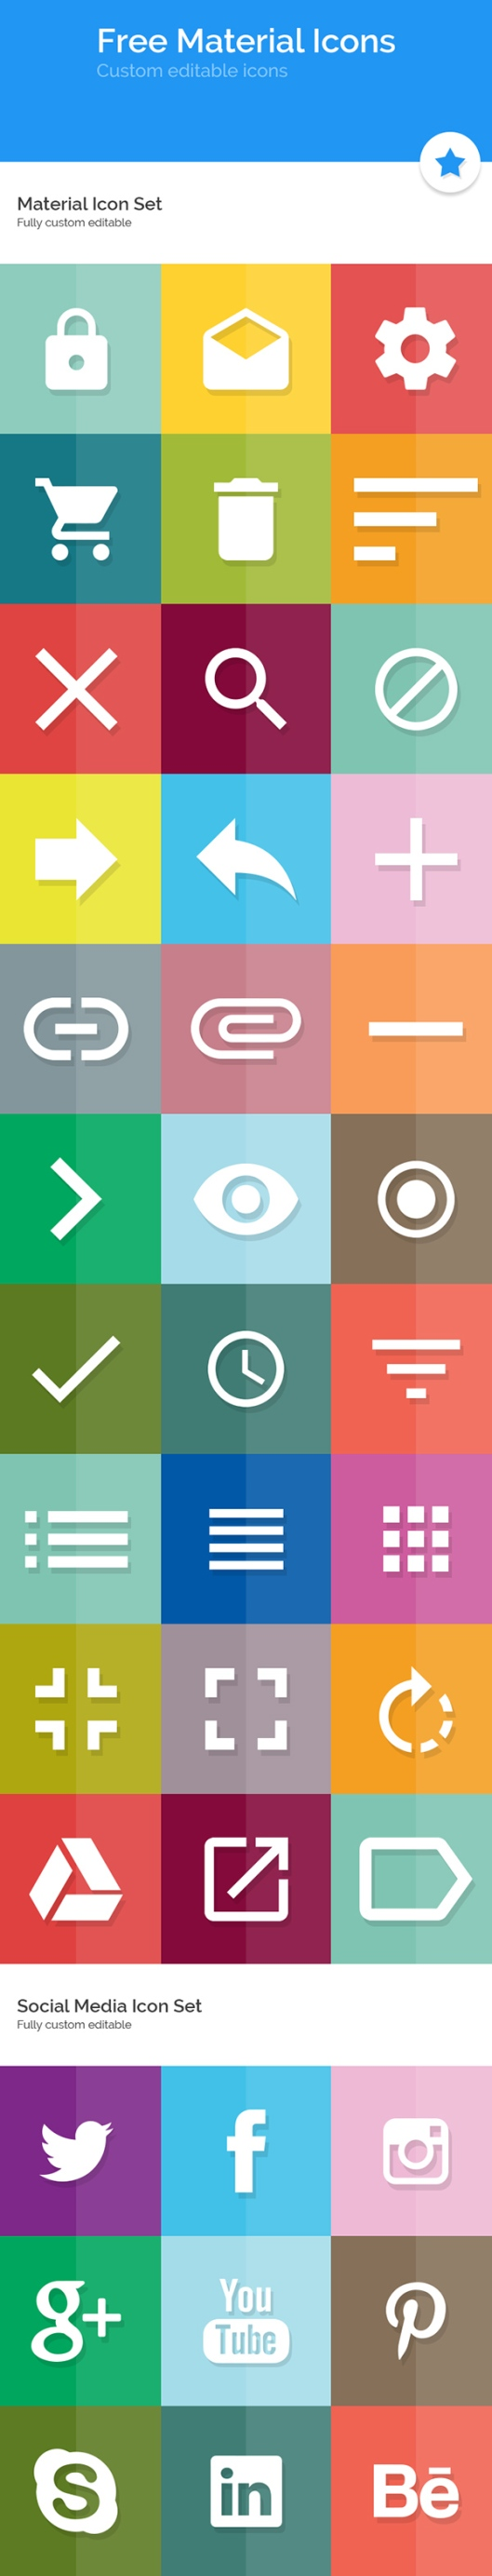 Free-Material-Icon-Set